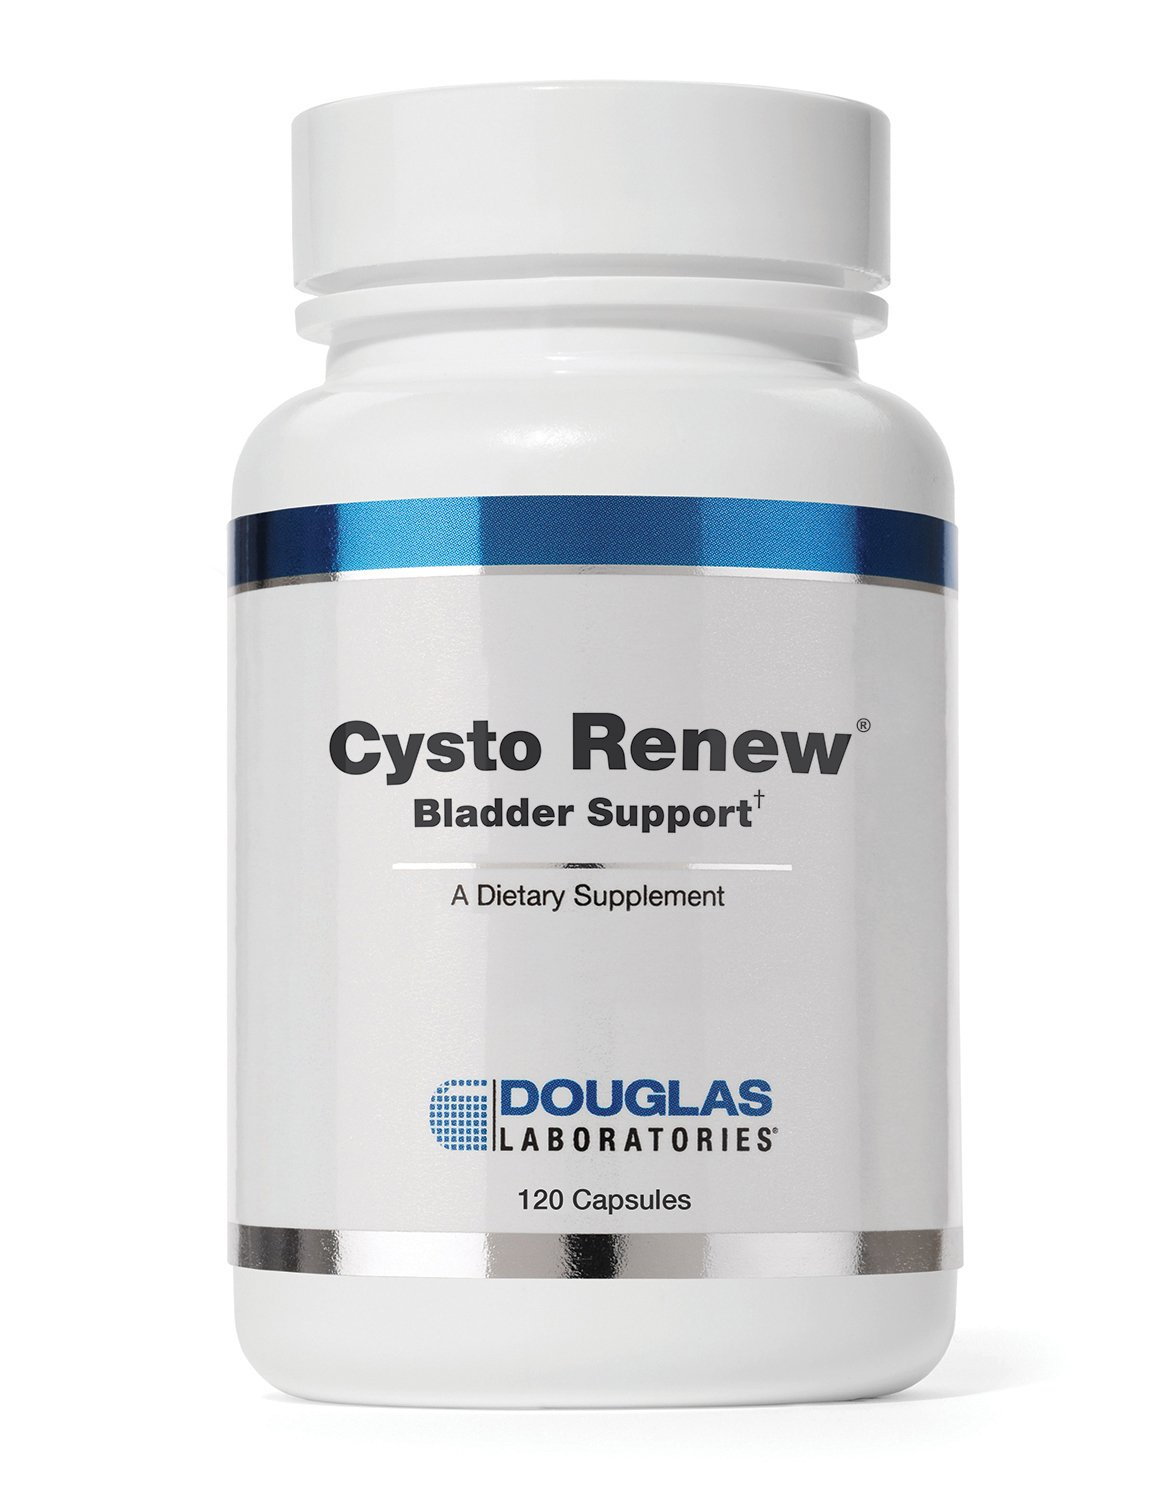 Douglas Laboratories - Cysto Renew - Supports a Calm and Healthy Functioning Bladder* - 120 Capsules